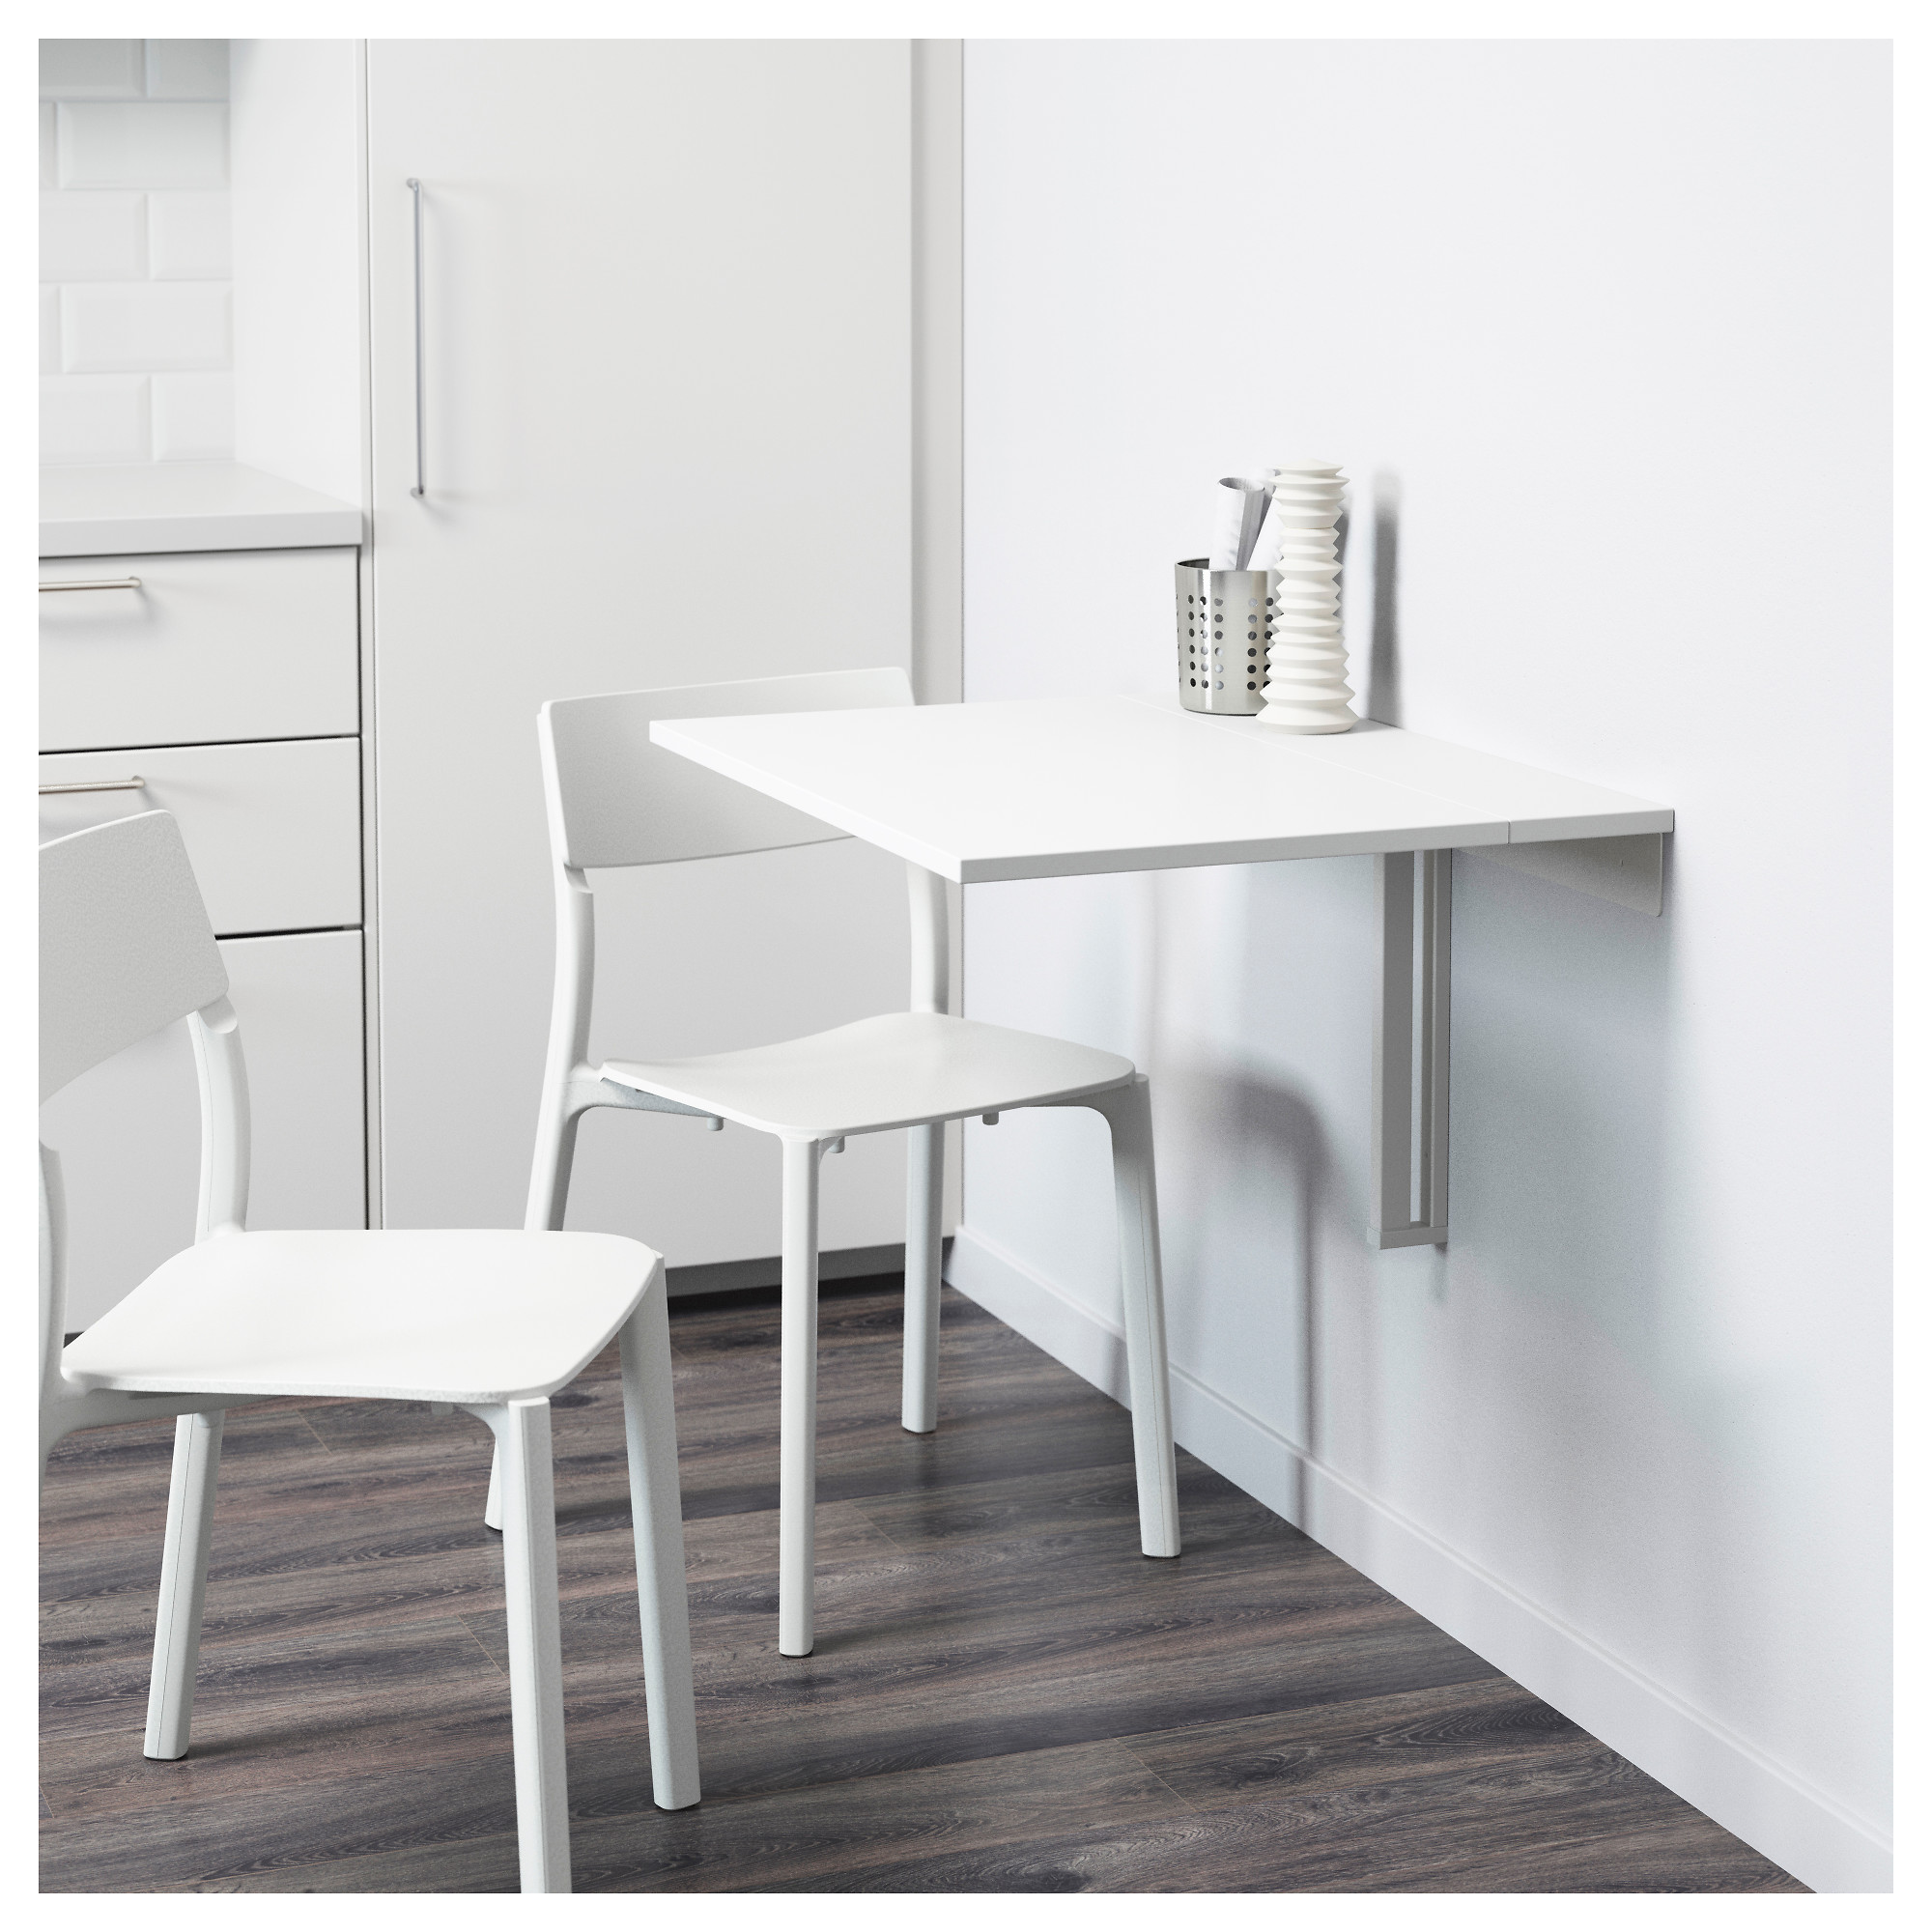 Image Of Mesa Abatible Pared Cocina Ikea NORBERG Mesa plegable de ...